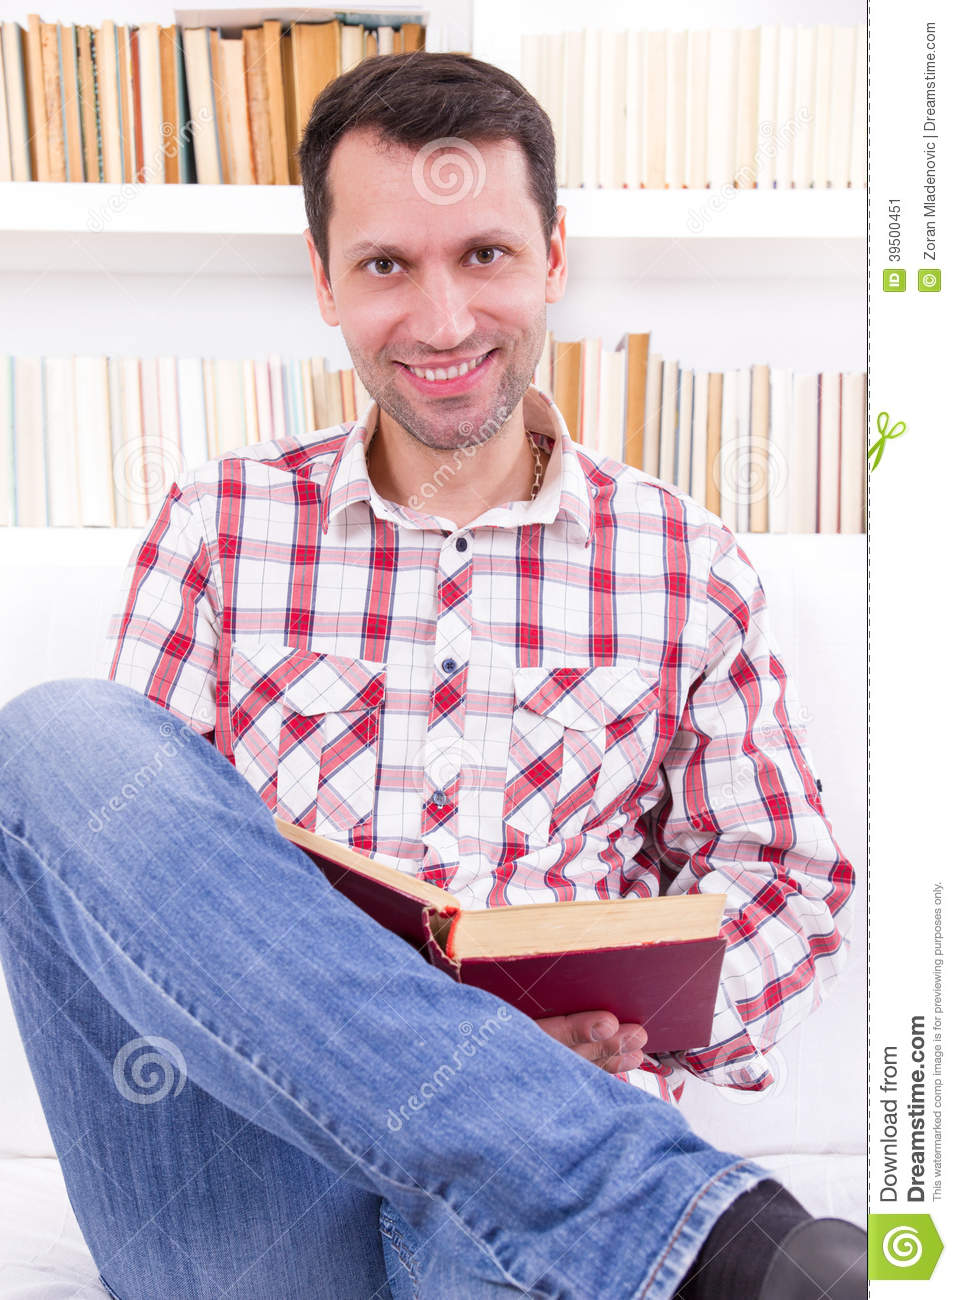 handsome man relaxing at home on a sofa in the living room reading a book